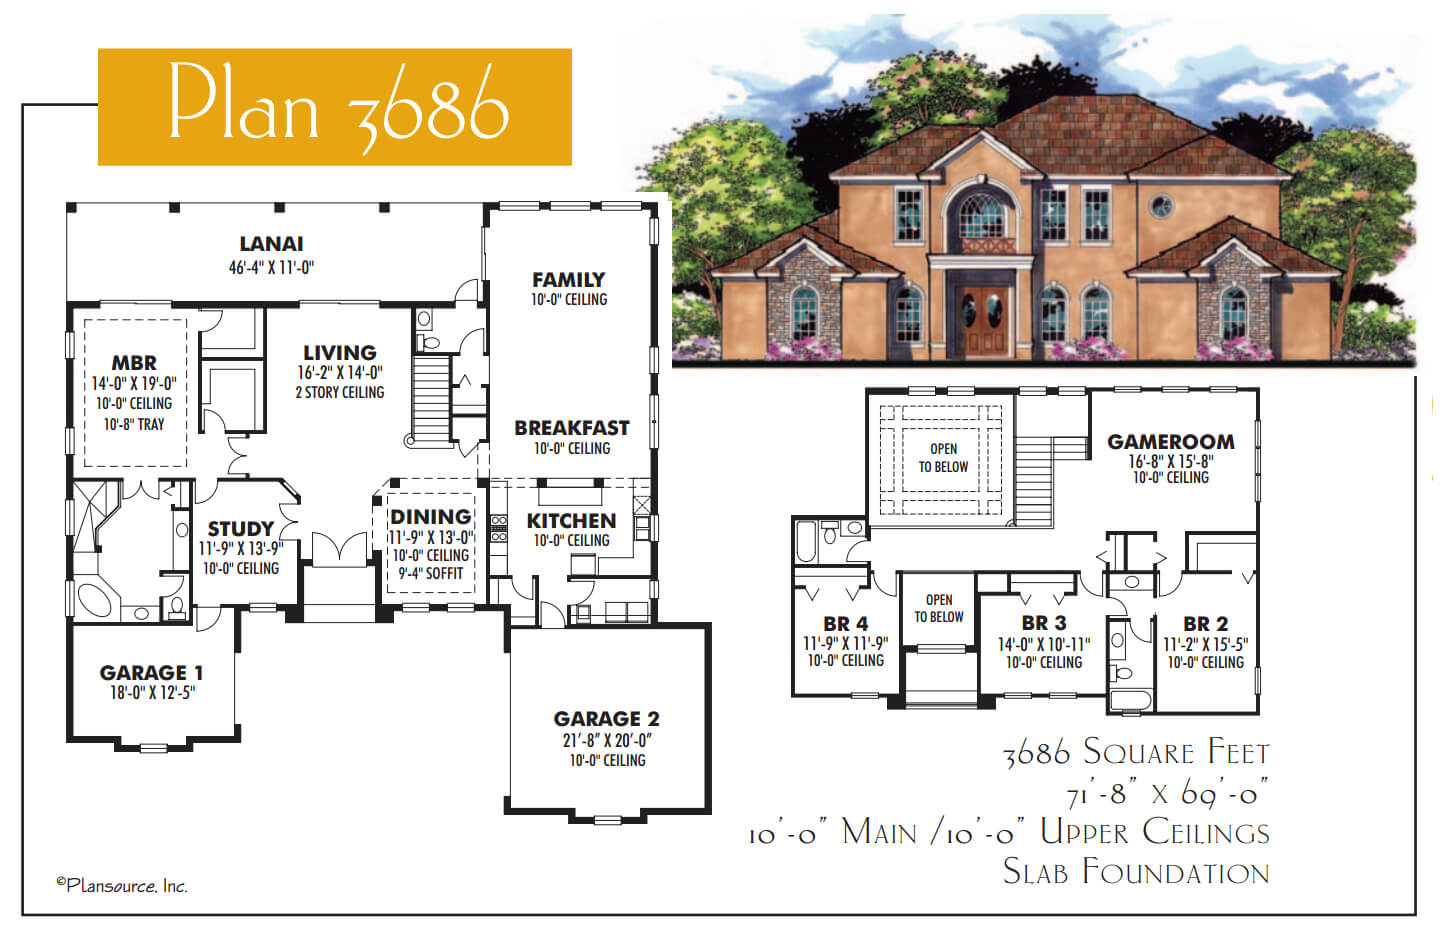 Floor Plans,3,501 SQ FT TO 4,000 SQ FT,1101